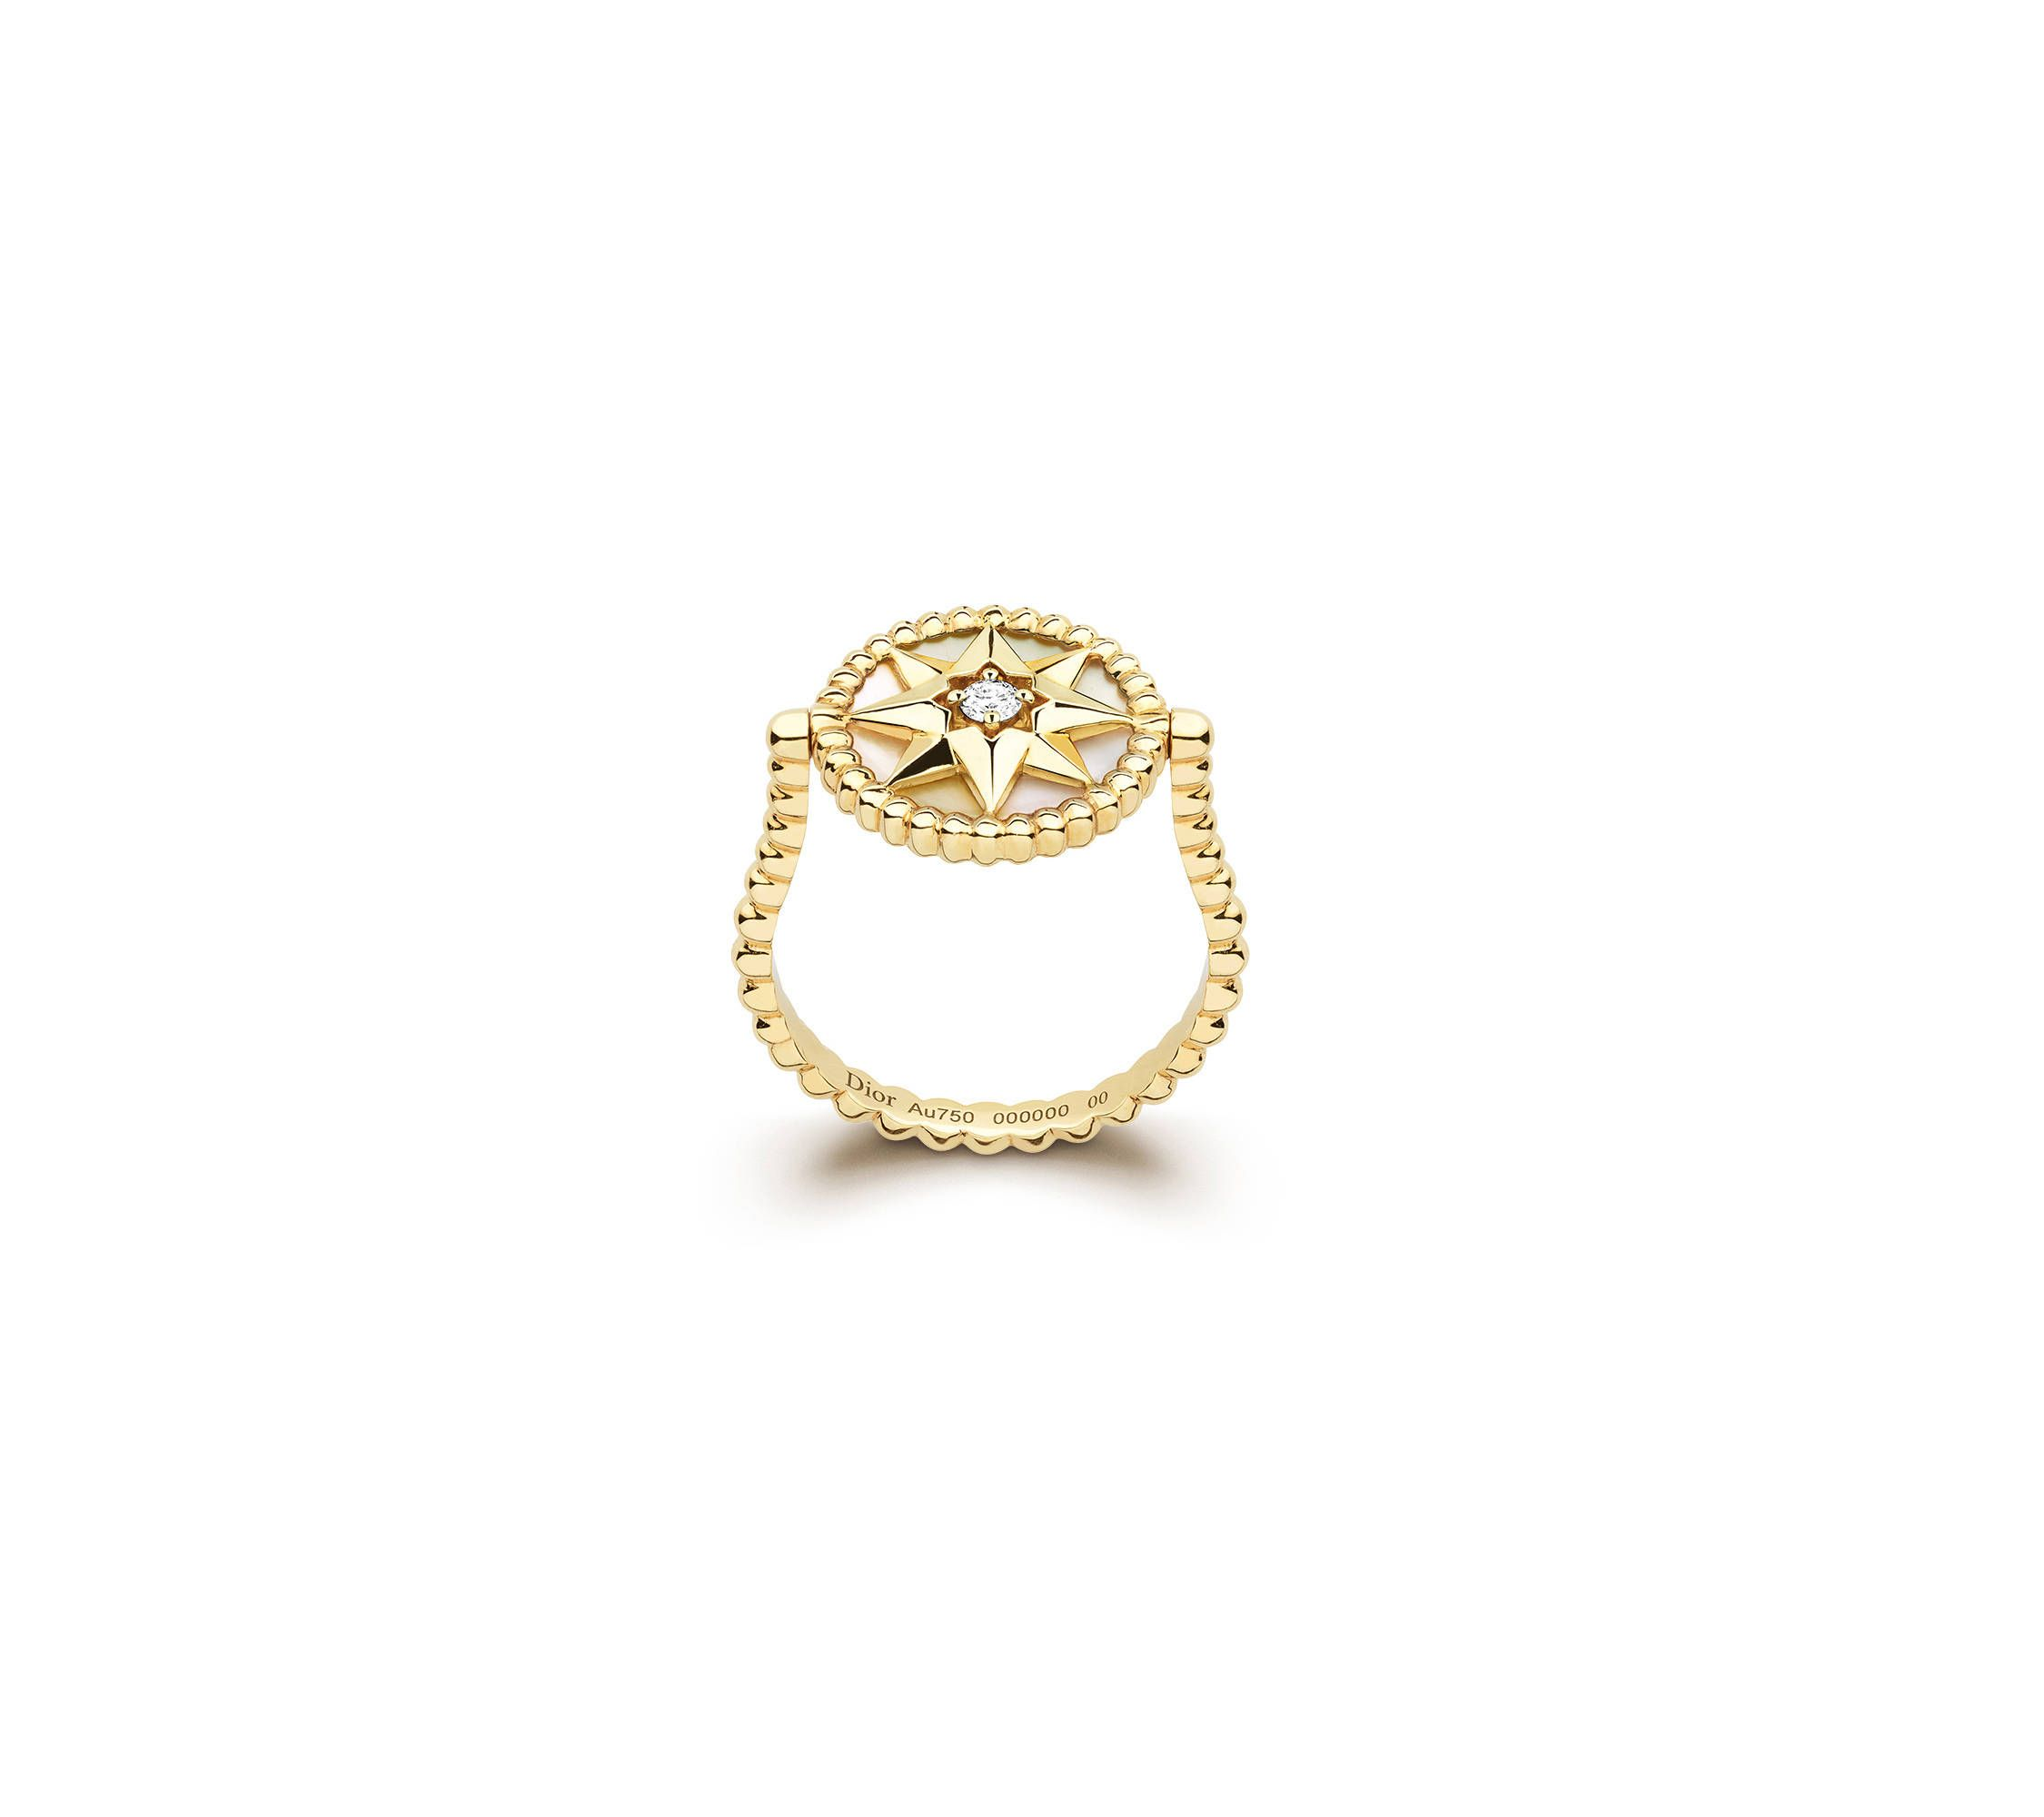 5a2f23d98f Rose des vents ring, 18k yellow gold, diamond and mother-of-pearl ...